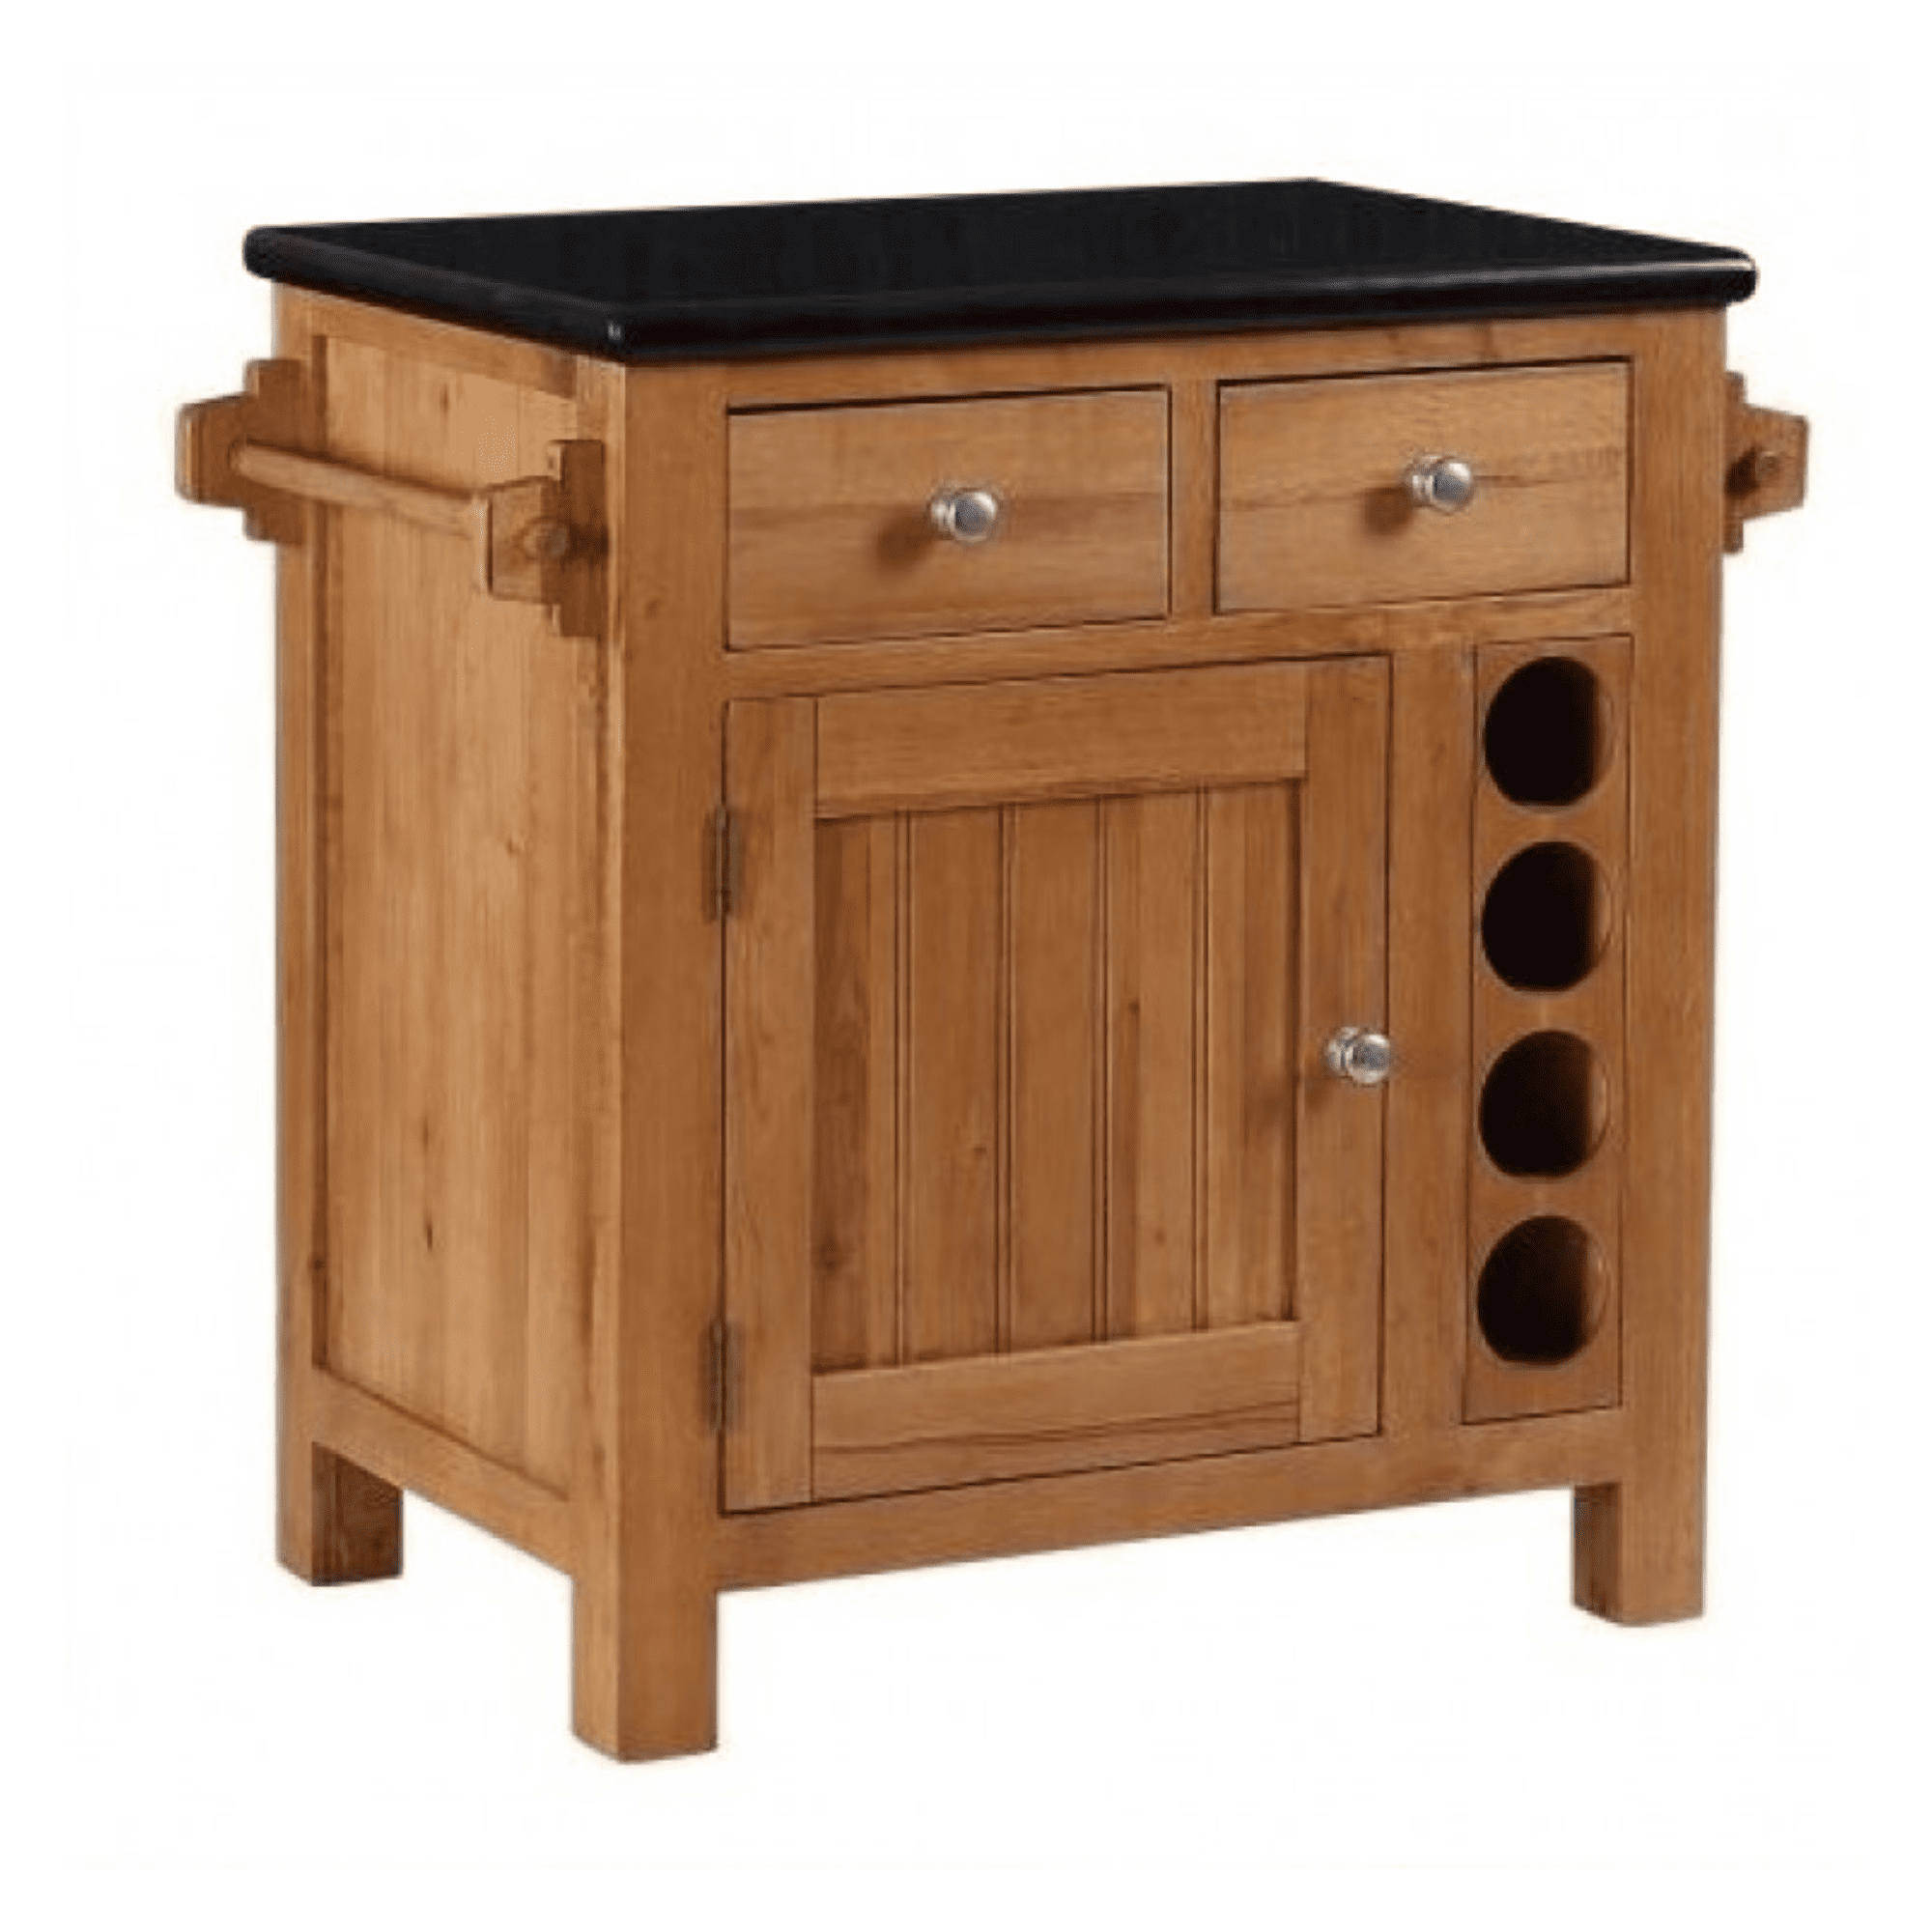 Small kitchen island with granite top and drawers and doors